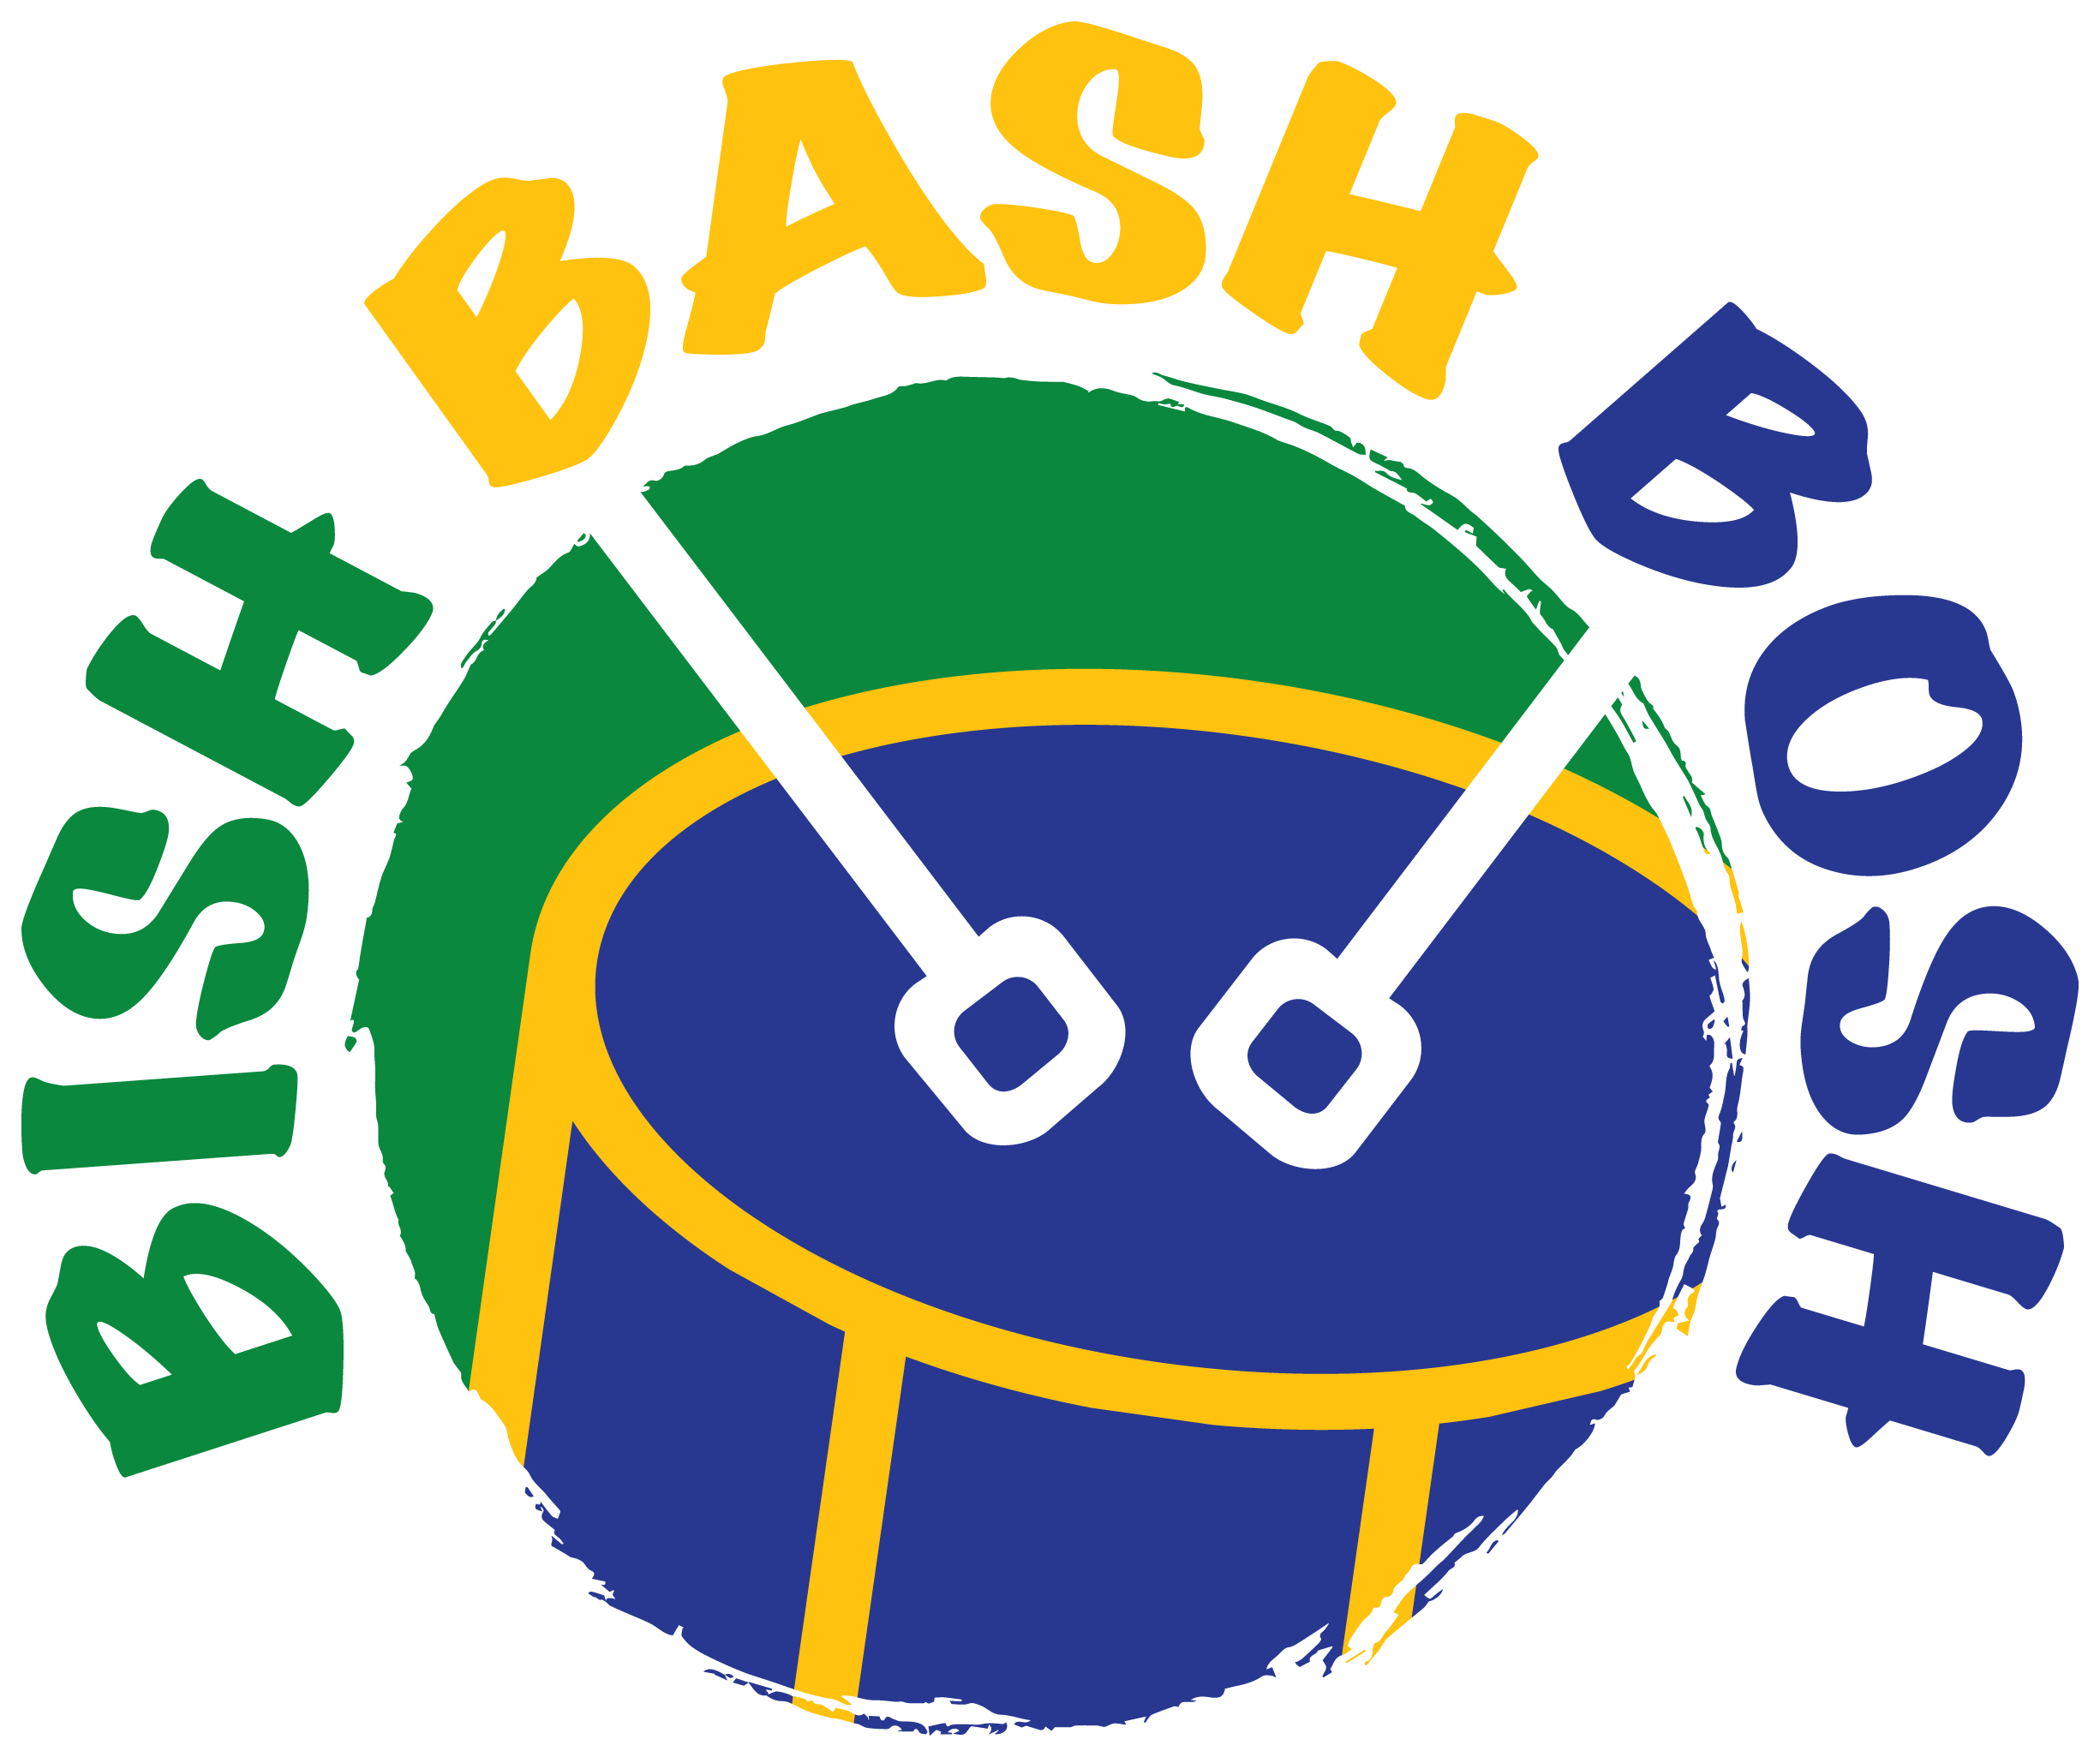 Drums clipart samba drums. Drumming workshops for all